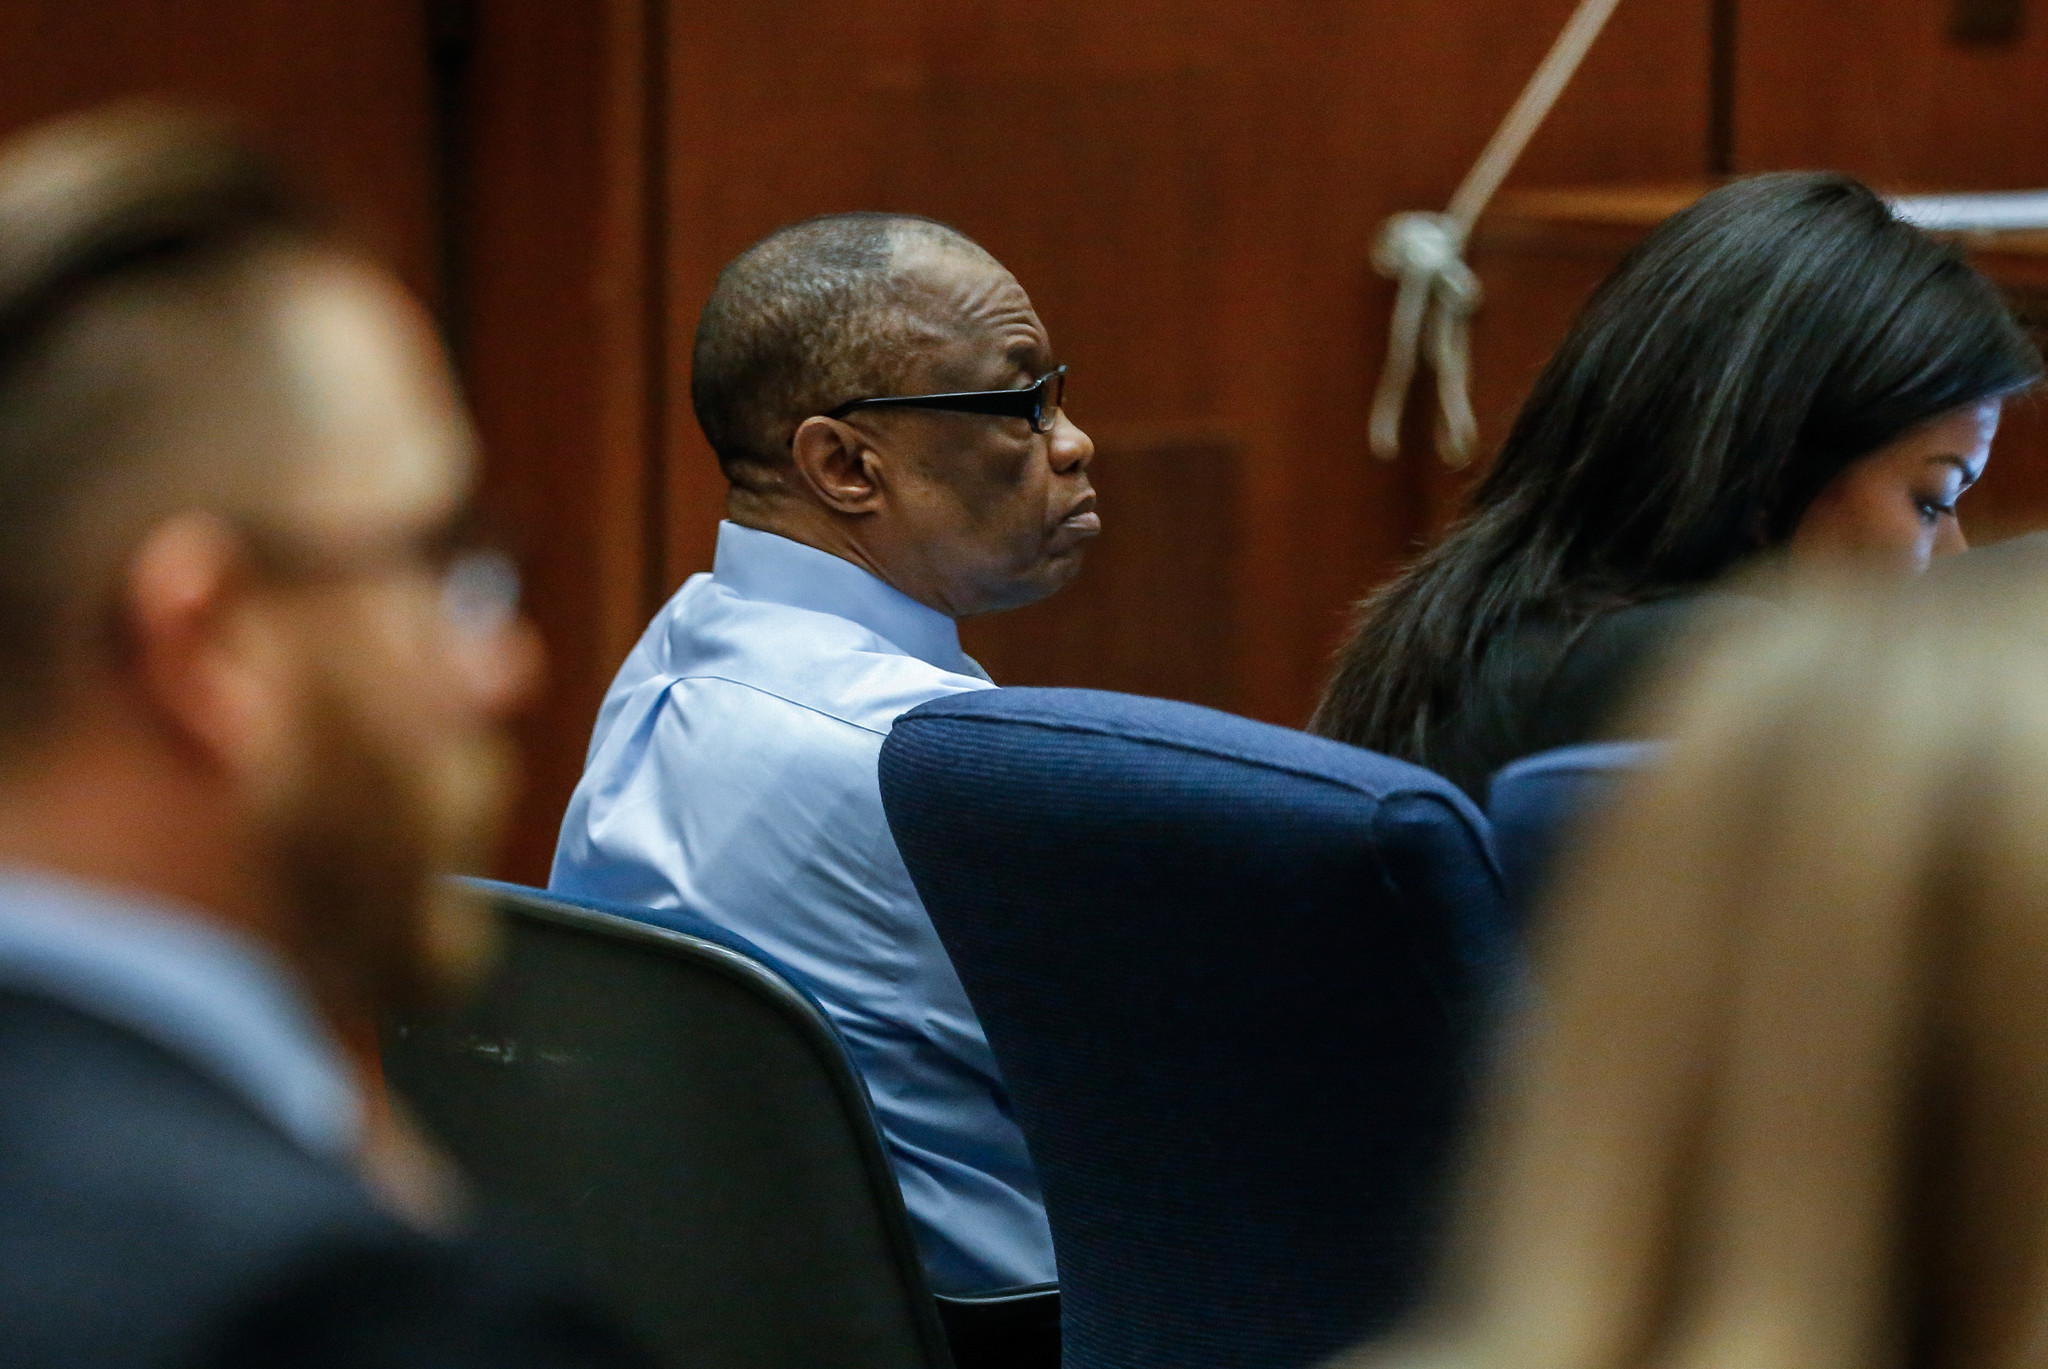 Grim sleeper serial killer trial begins years after slayings terrorized south l a la times